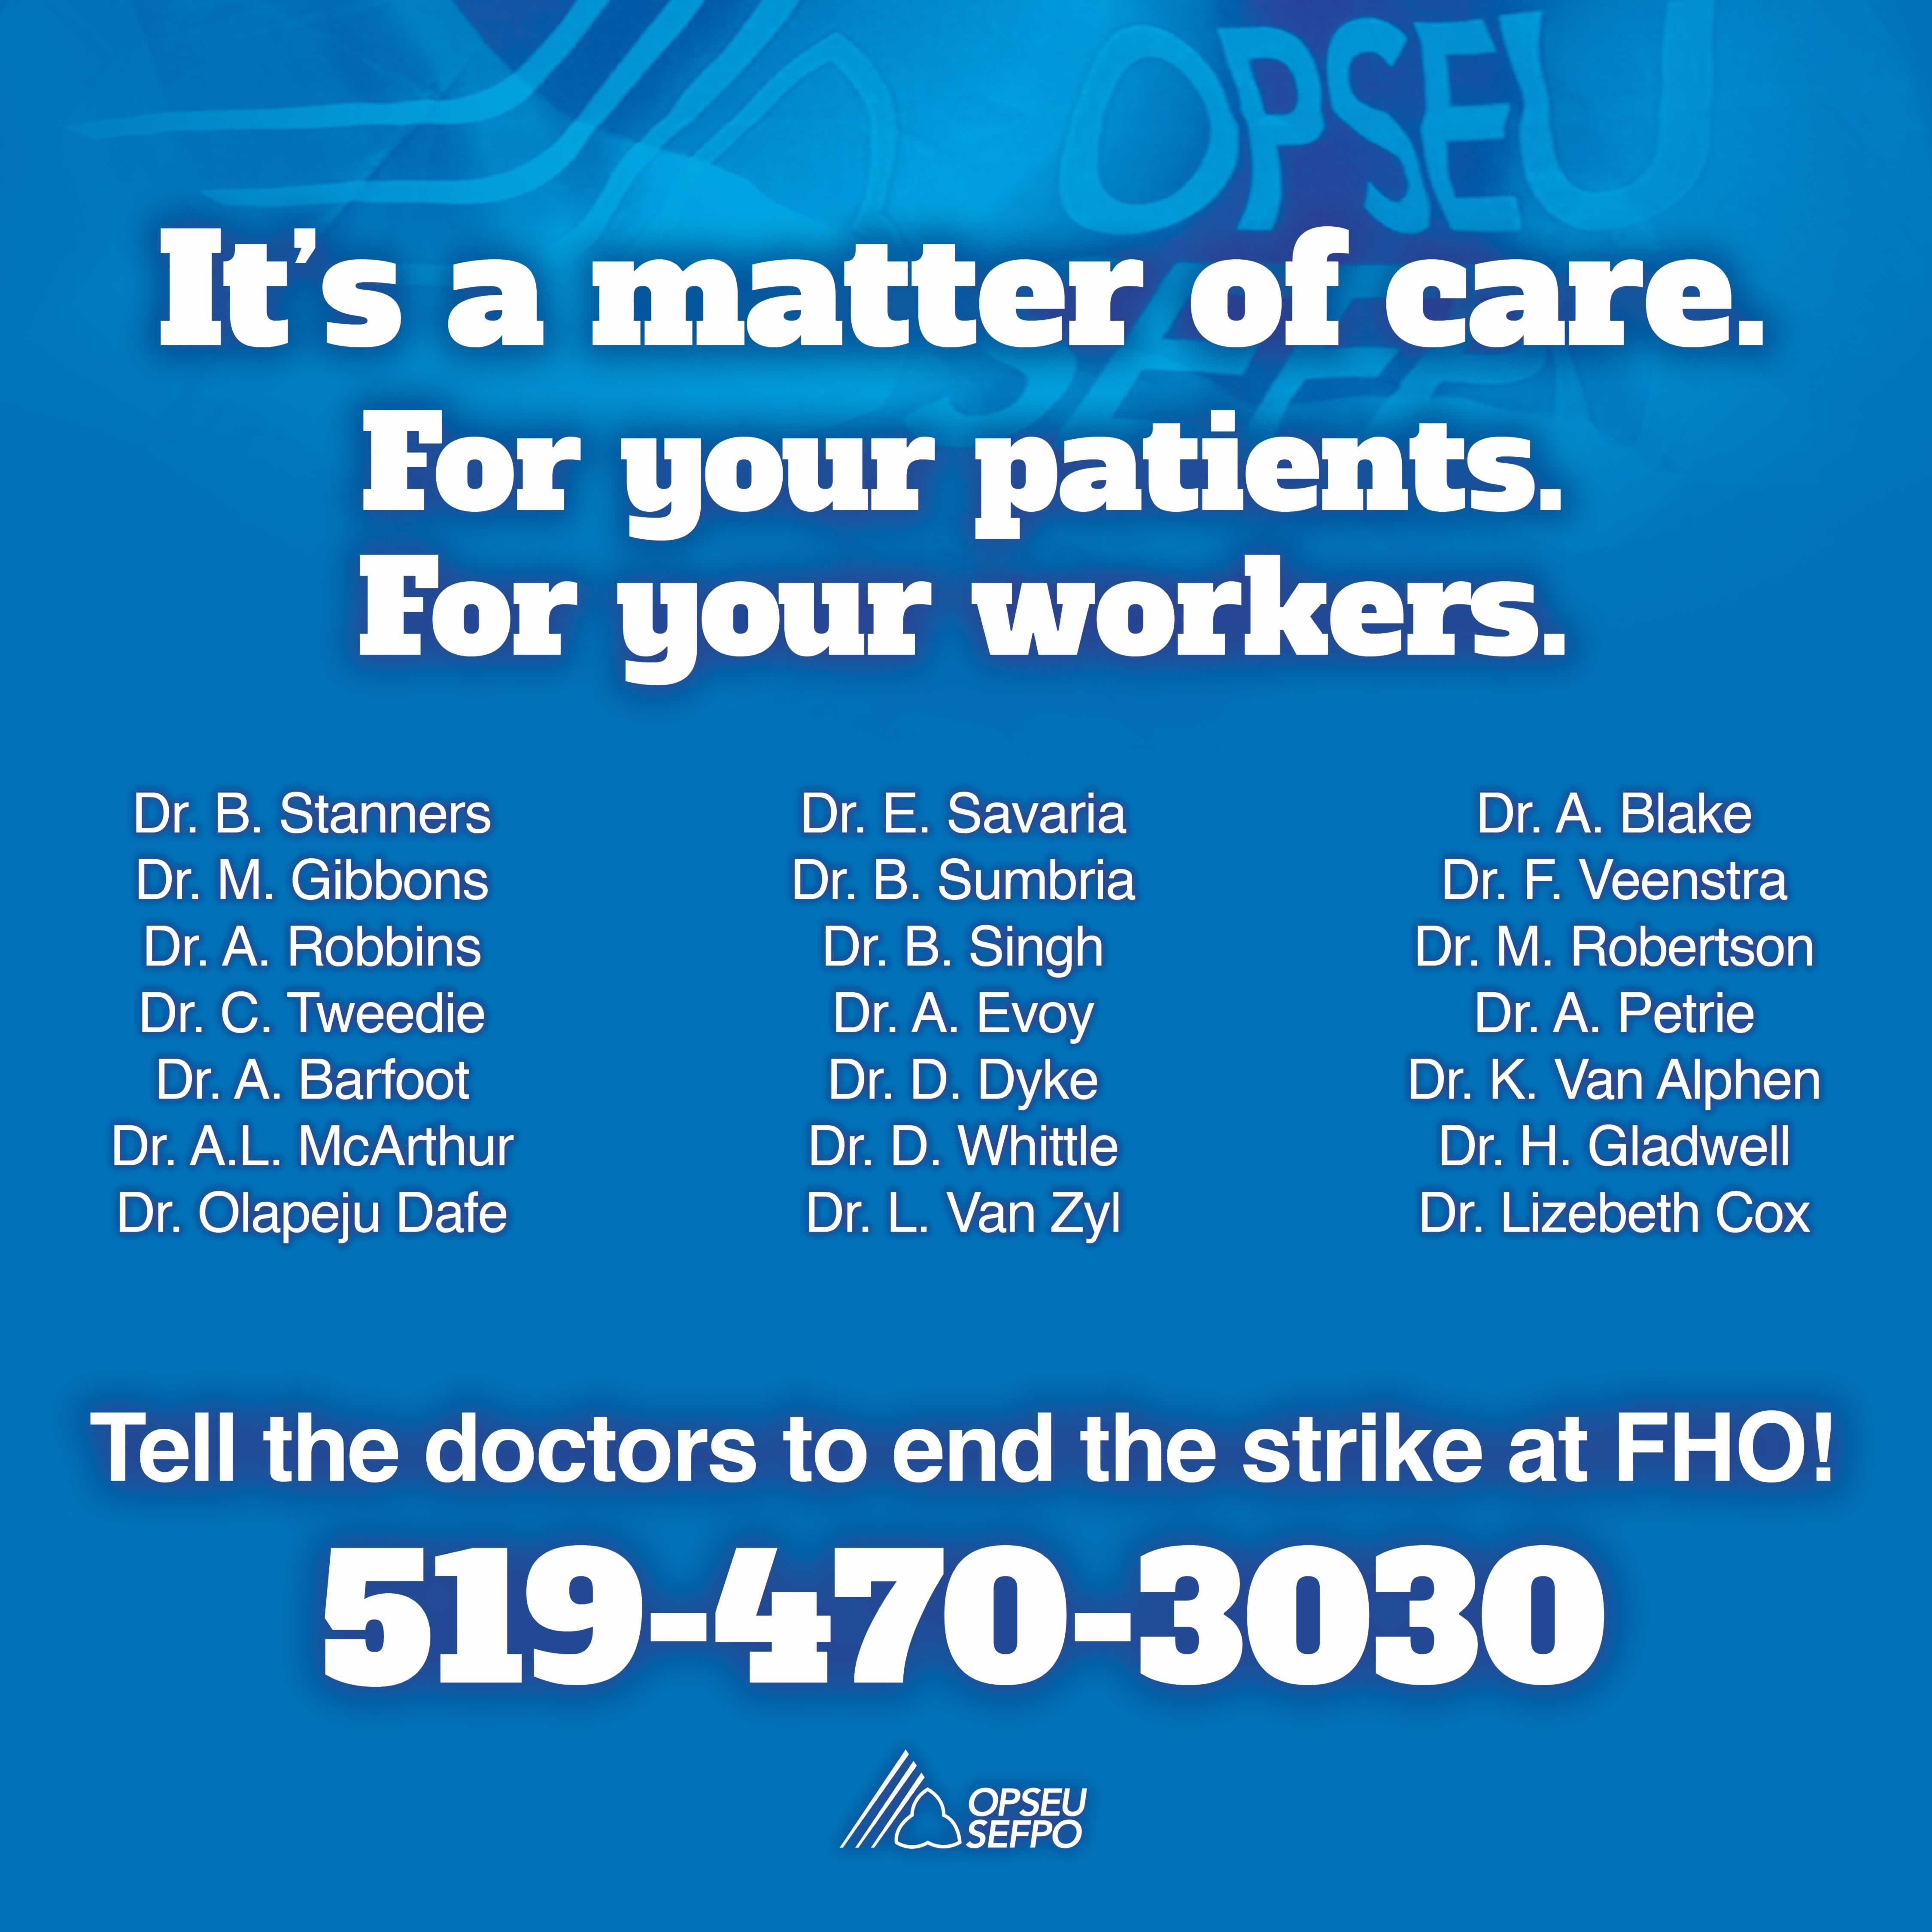 It's a matter of care. Tell the doctors to end the strike at FHO!